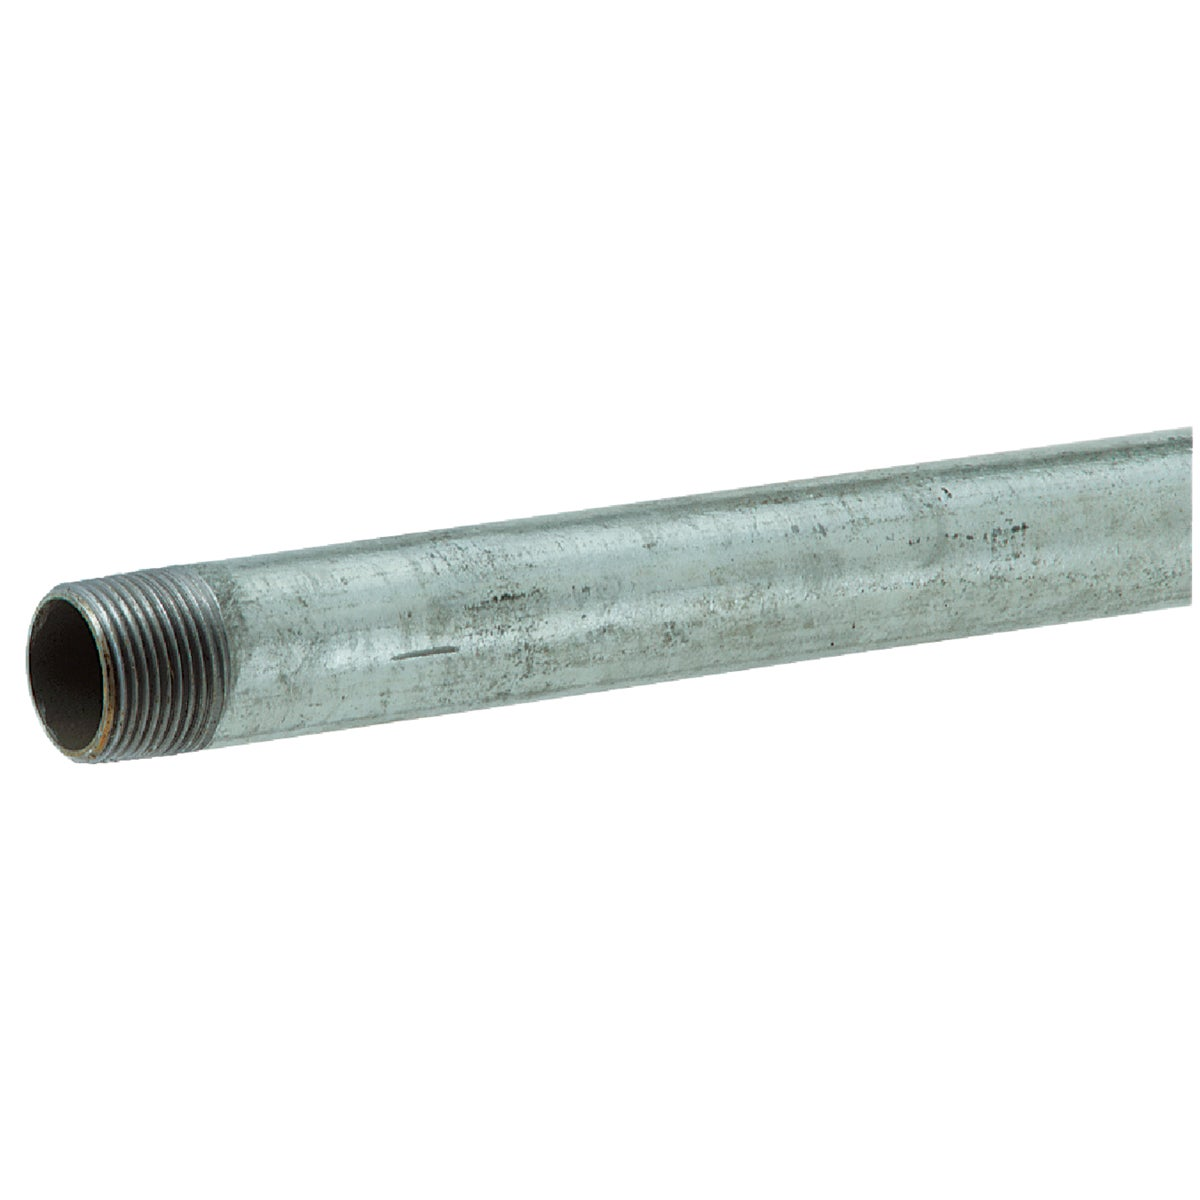 1-1/2X18GALV RDI-CT PIPE - 11/2X18 by Southland Pipe Nippl